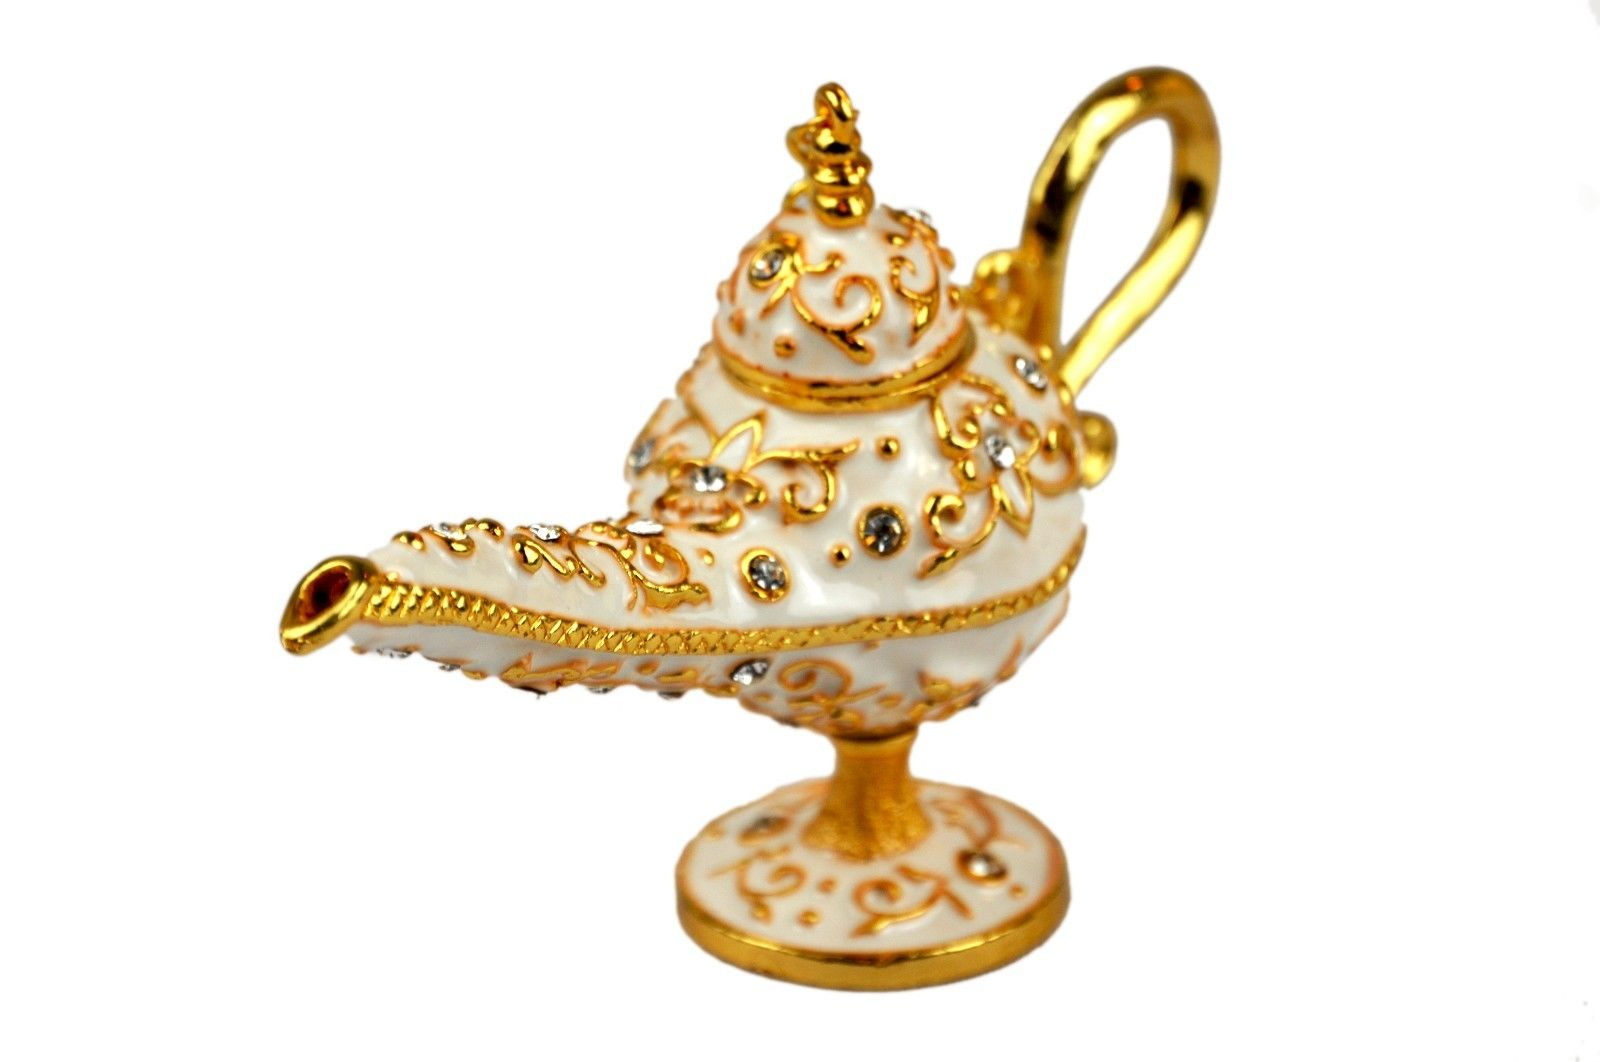 Legend Aladdin Genie lamp decorative. White